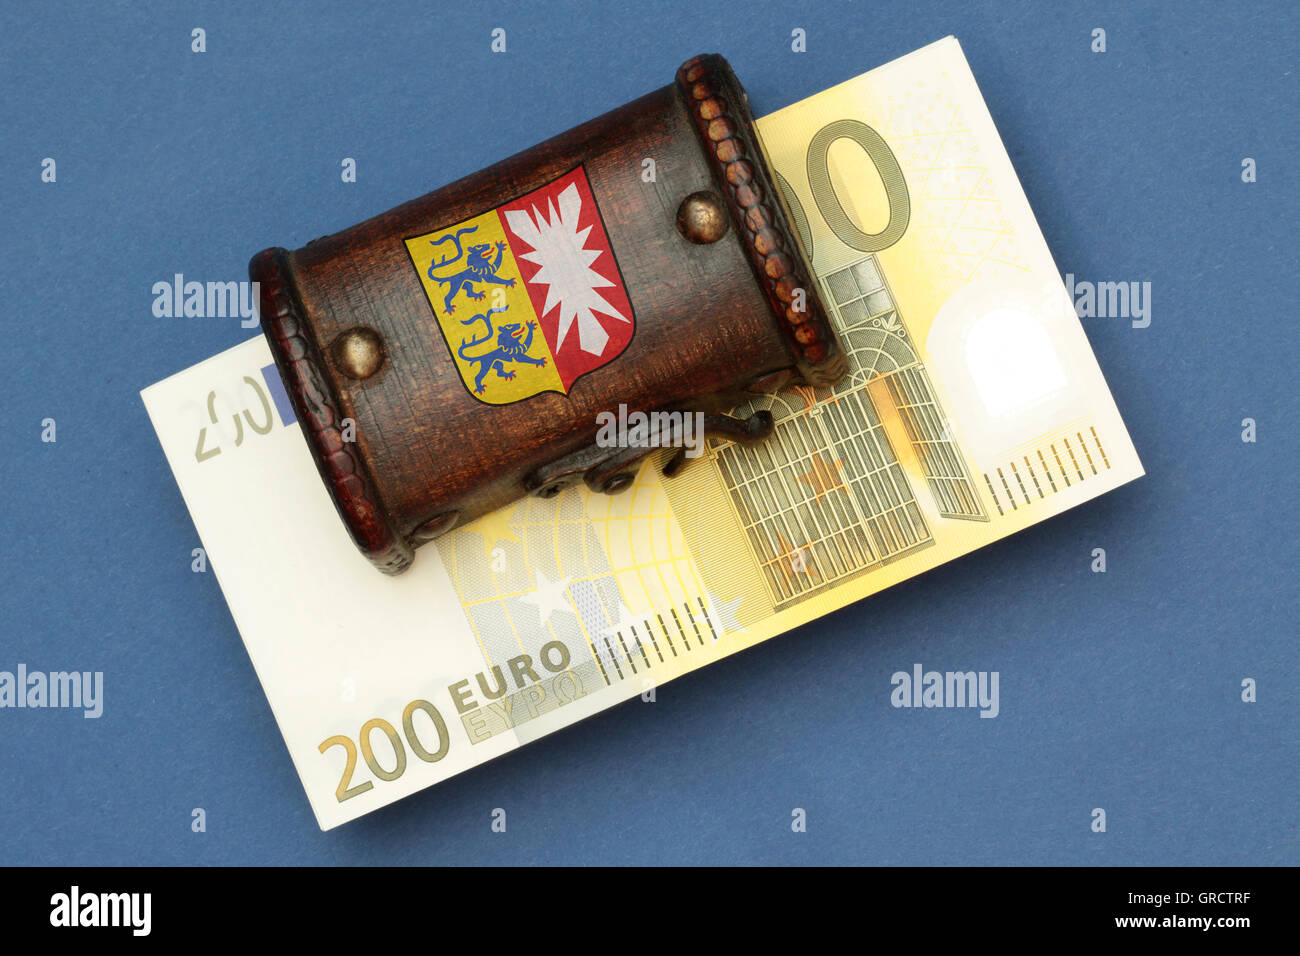 Treasure Chest With Seal Of State Schleswig Holstein And Euro Bills - Stock Image